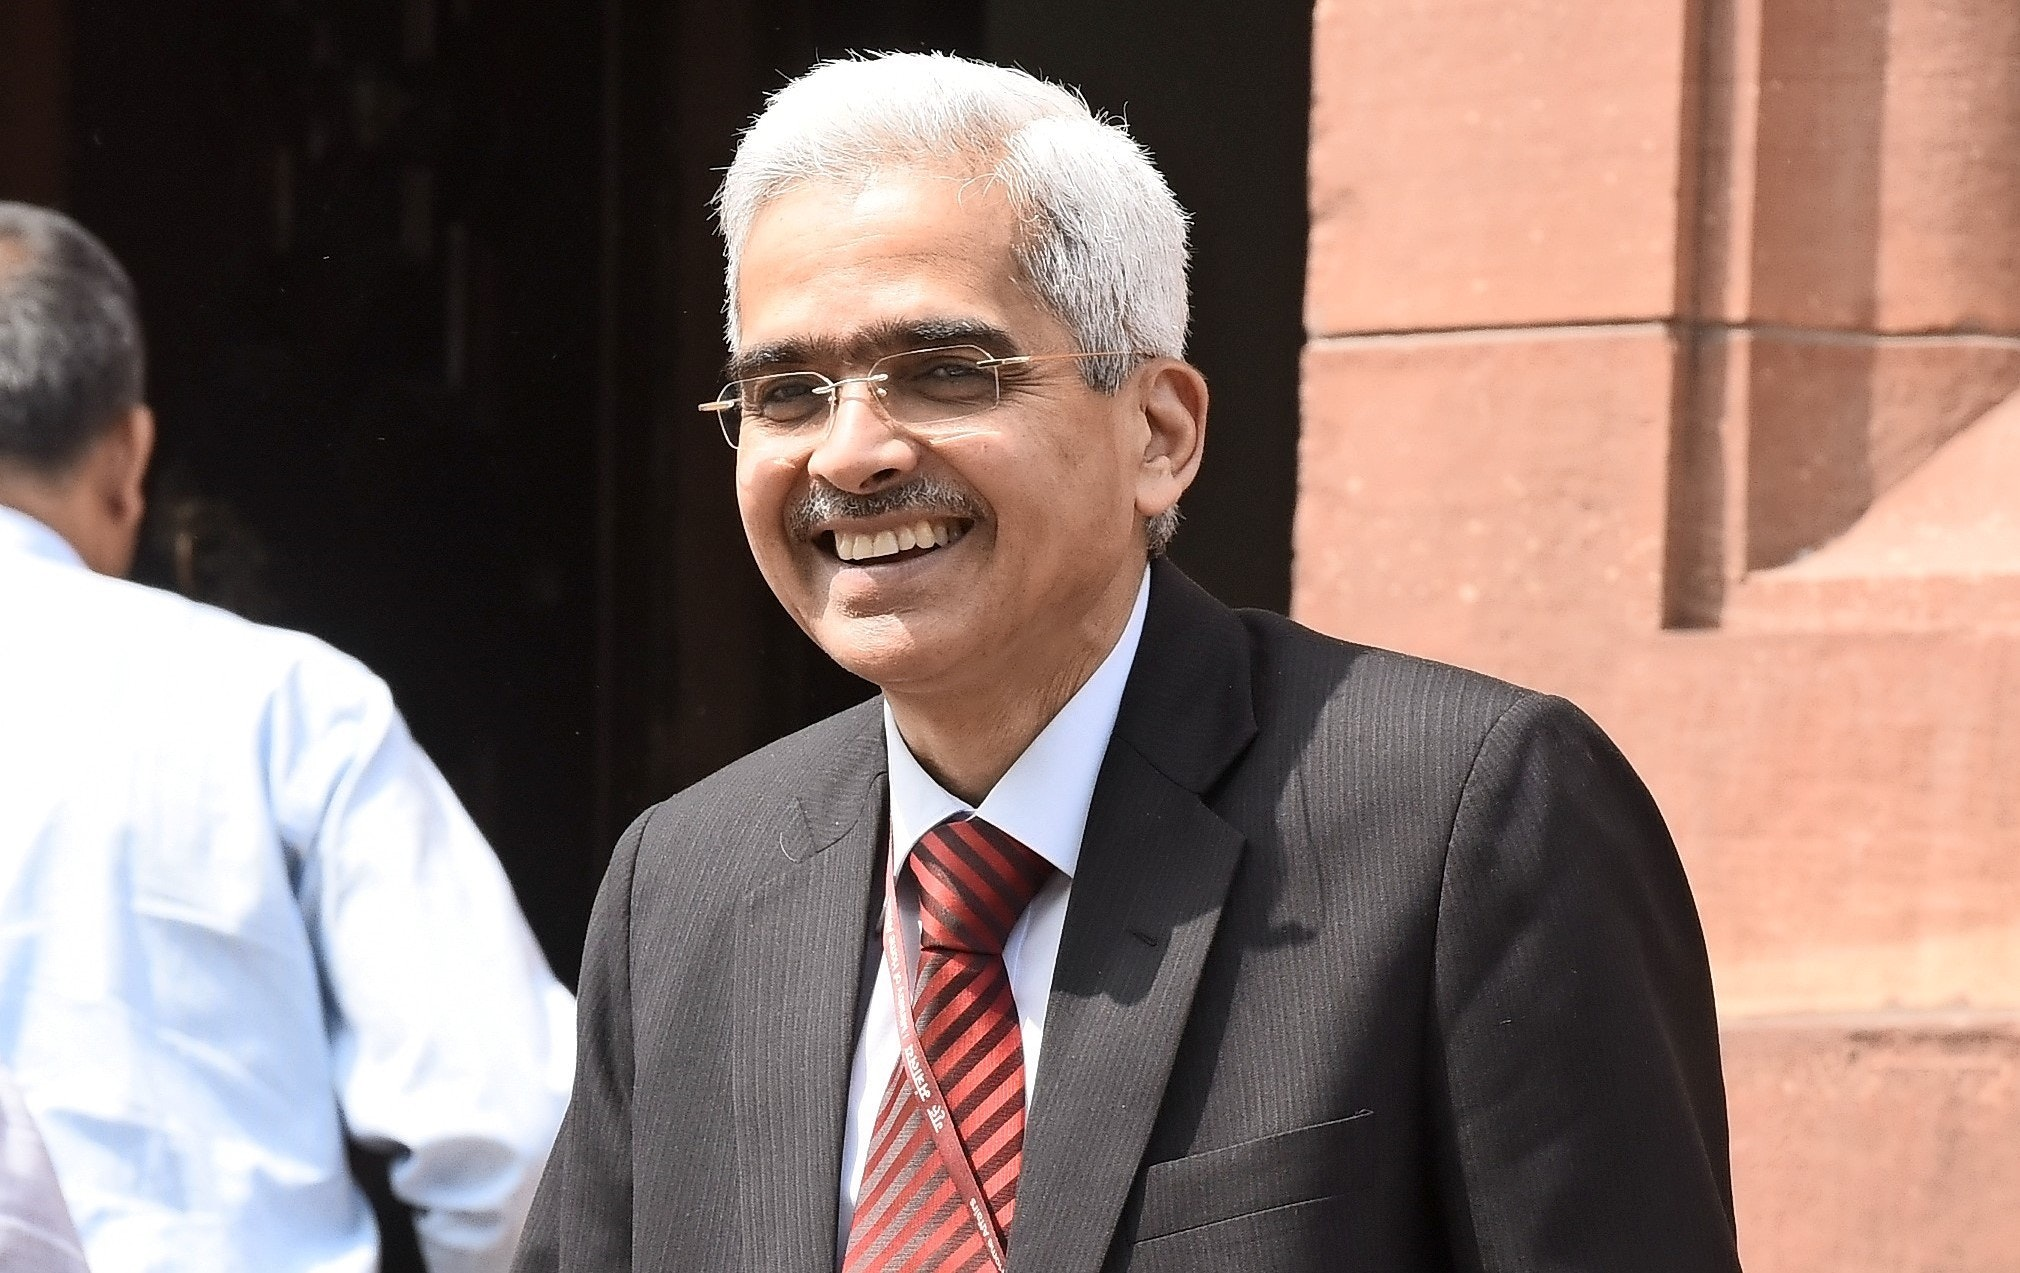 NEW DELHI, INDIA - MARCH 15: Shaktikanta Das, Finance Secretary, during the Parliament Budget Session on March 15, 2016 in New Delhi, India. The Lok Sabha discussed The Real Estate Regulator (Regulation and Development) Bill that seeks to protect the interests of property buyers against unscrupulous promoters and set up a sectoral watchdog. The bill, pending before the Parliament since 2013, got approval of the Rajya Sabha on March 10. (Photo by Sonu Mehta/Hindustan Times via Getty Images)